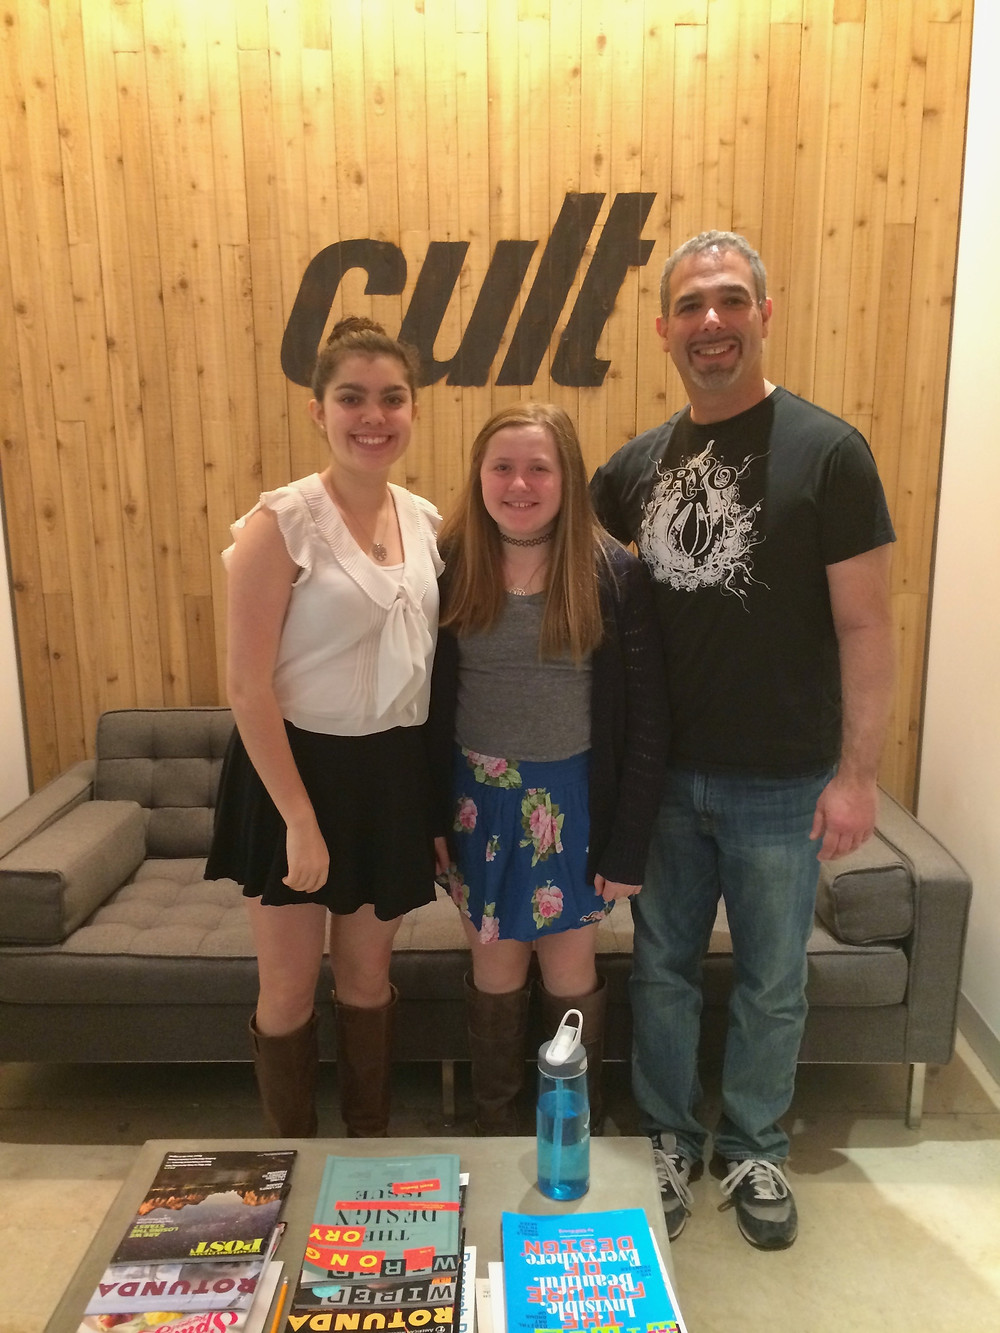 Emma and Quinn with the founder of CultHealth